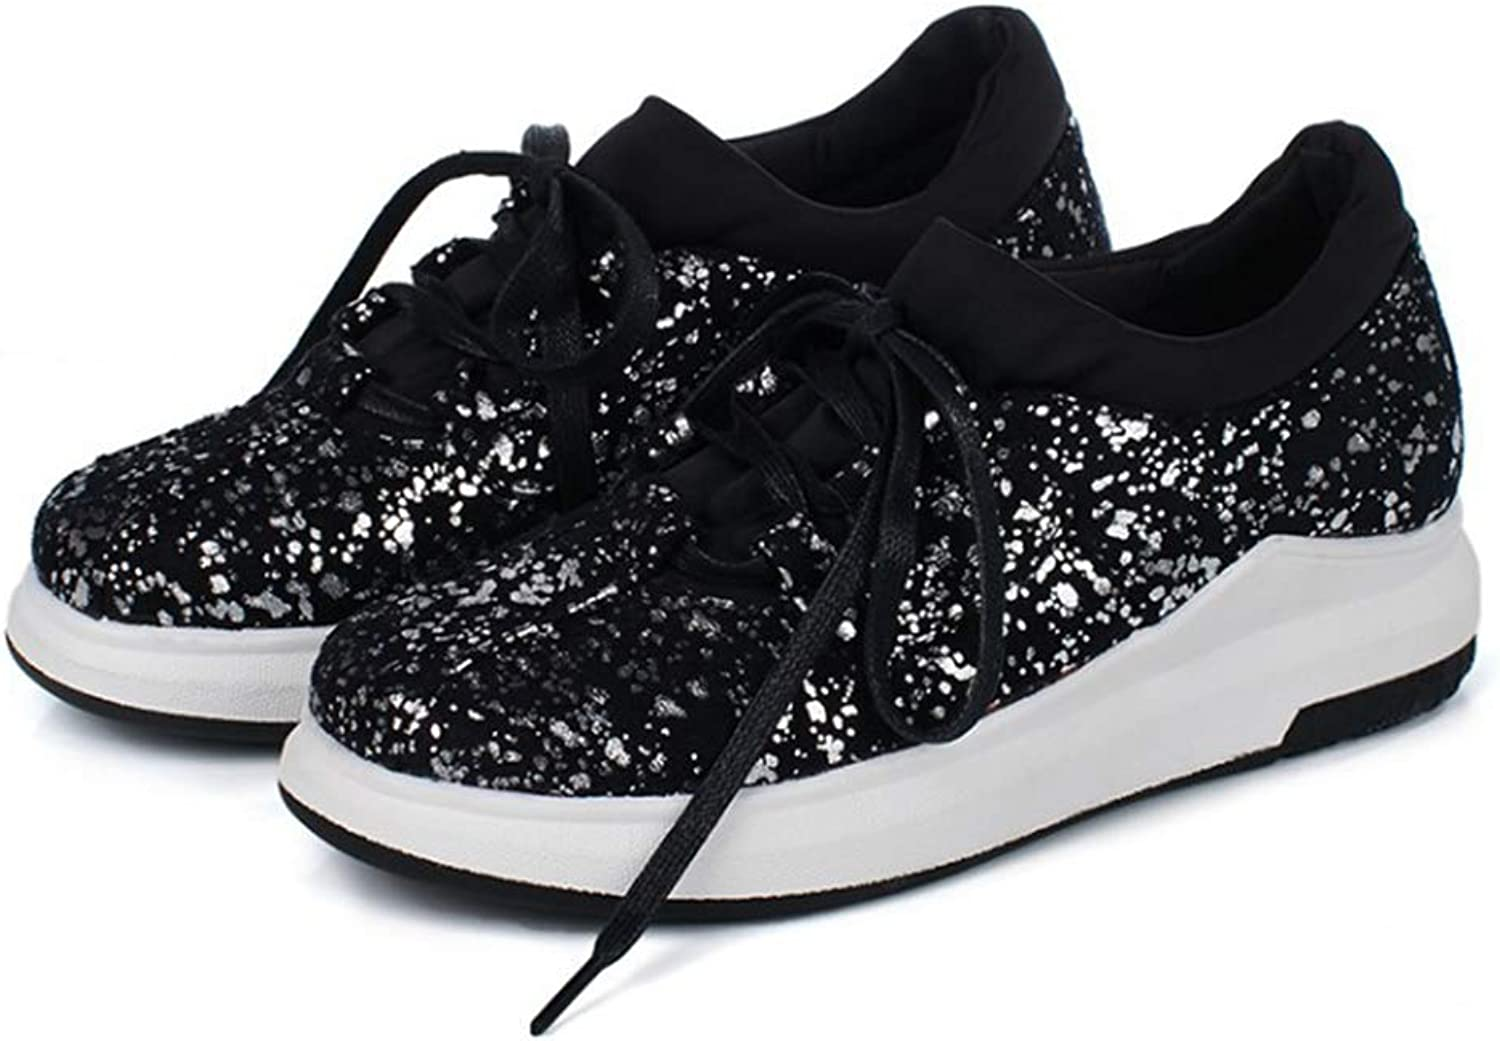 GIY Women's Sparkly Lace up Fashion Sneakers Weight Mesh Sparkle Slip On Casual Wedge Platform shoes